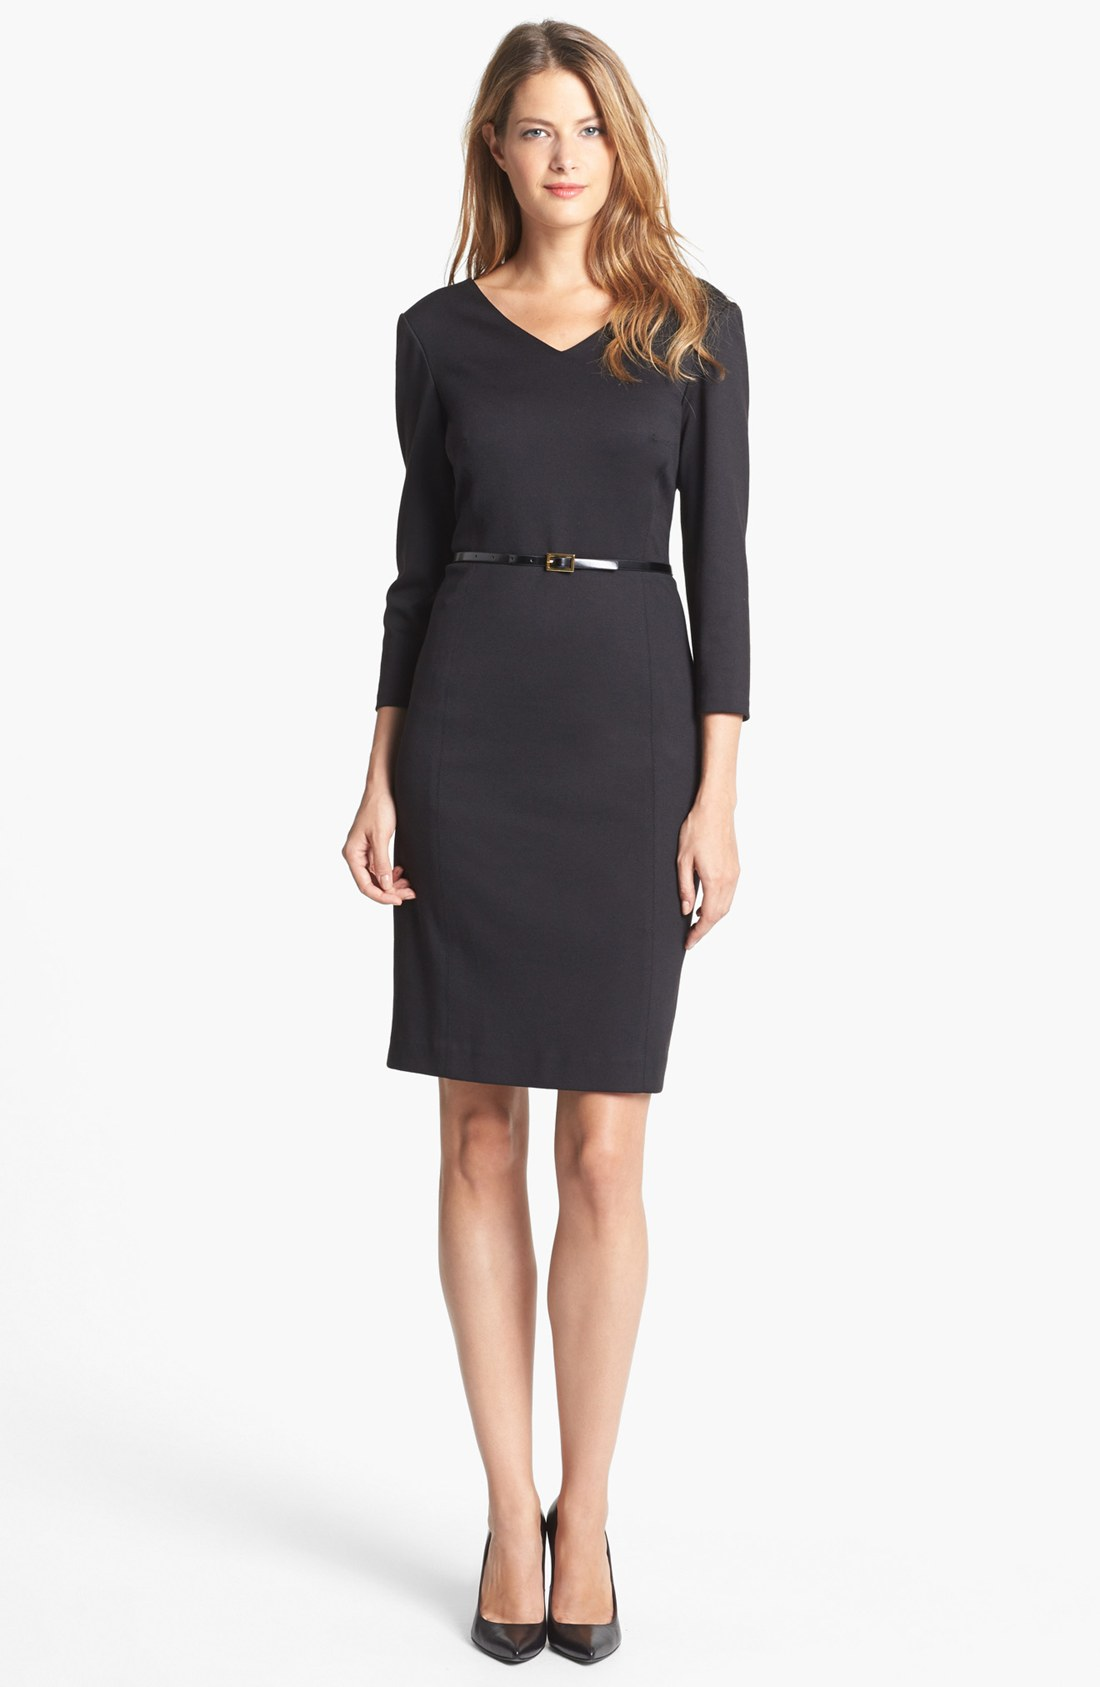 jones new york scarlet ponte sheath dress in black lyst. Black Bedroom Furniture Sets. Home Design Ideas